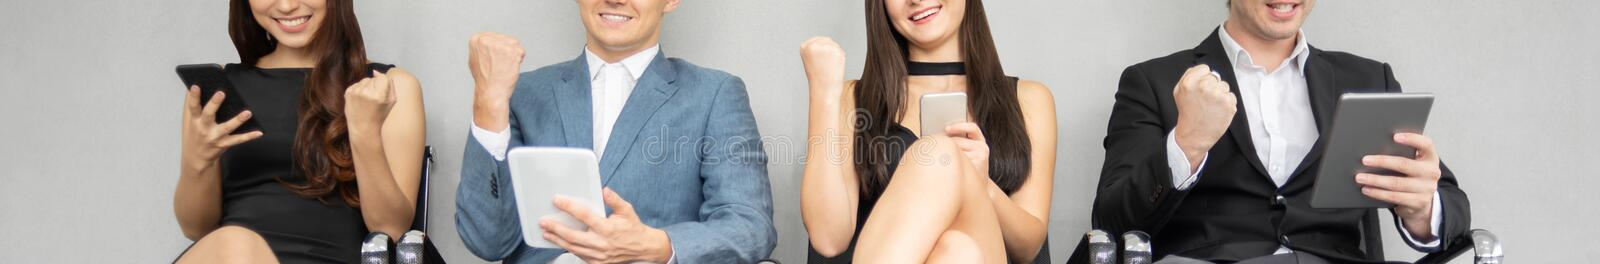 Group of young business people using smartphones and digital tablets stock image